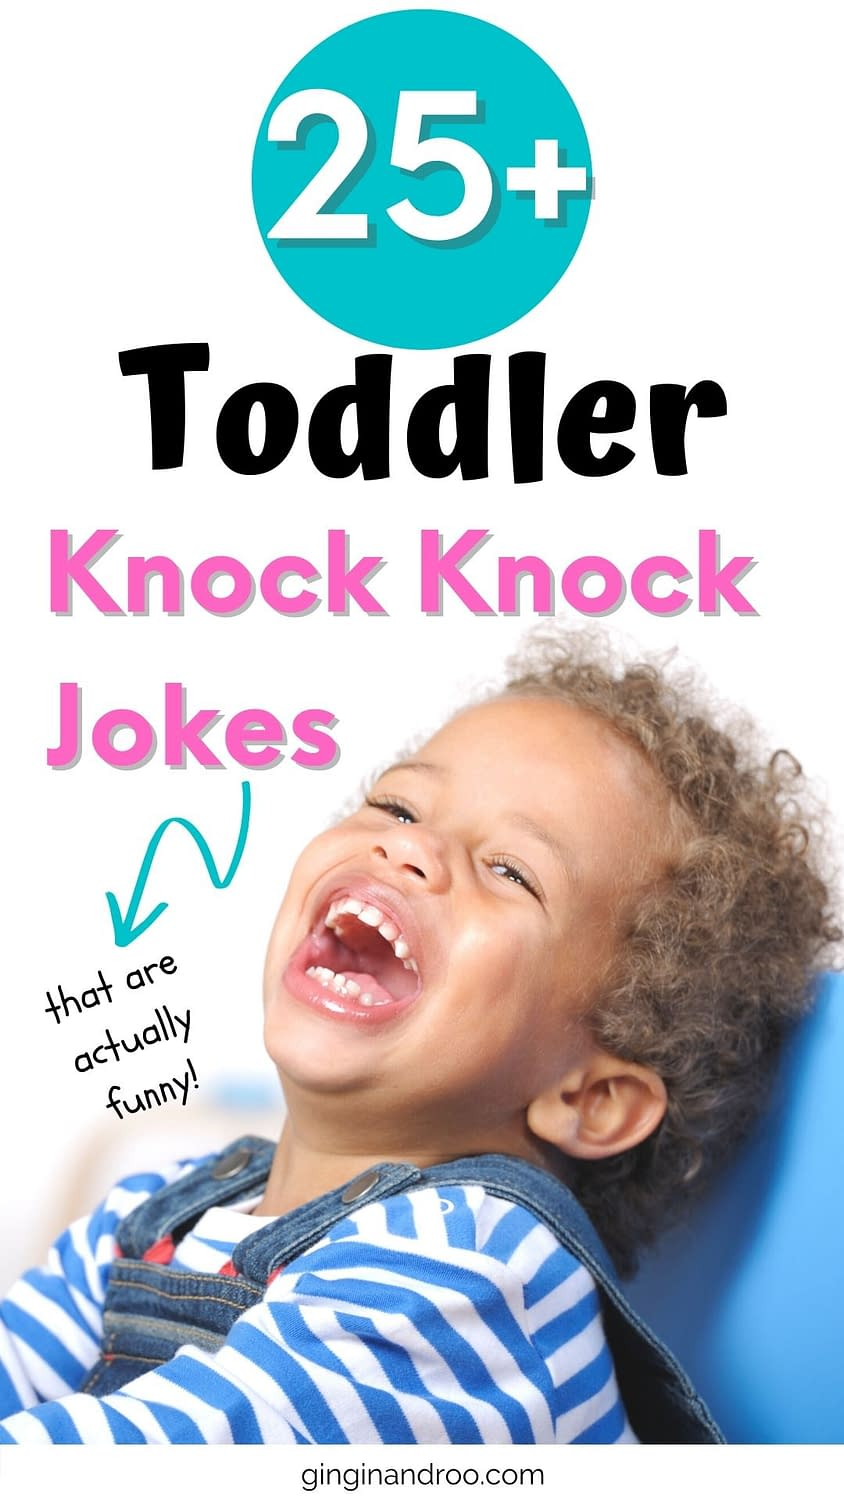 A good sense of humour is a really important part of childhood development. Give your toddler a giggle with the very best knock knock jokes for toddlers that are kid-friendly and actually funny.